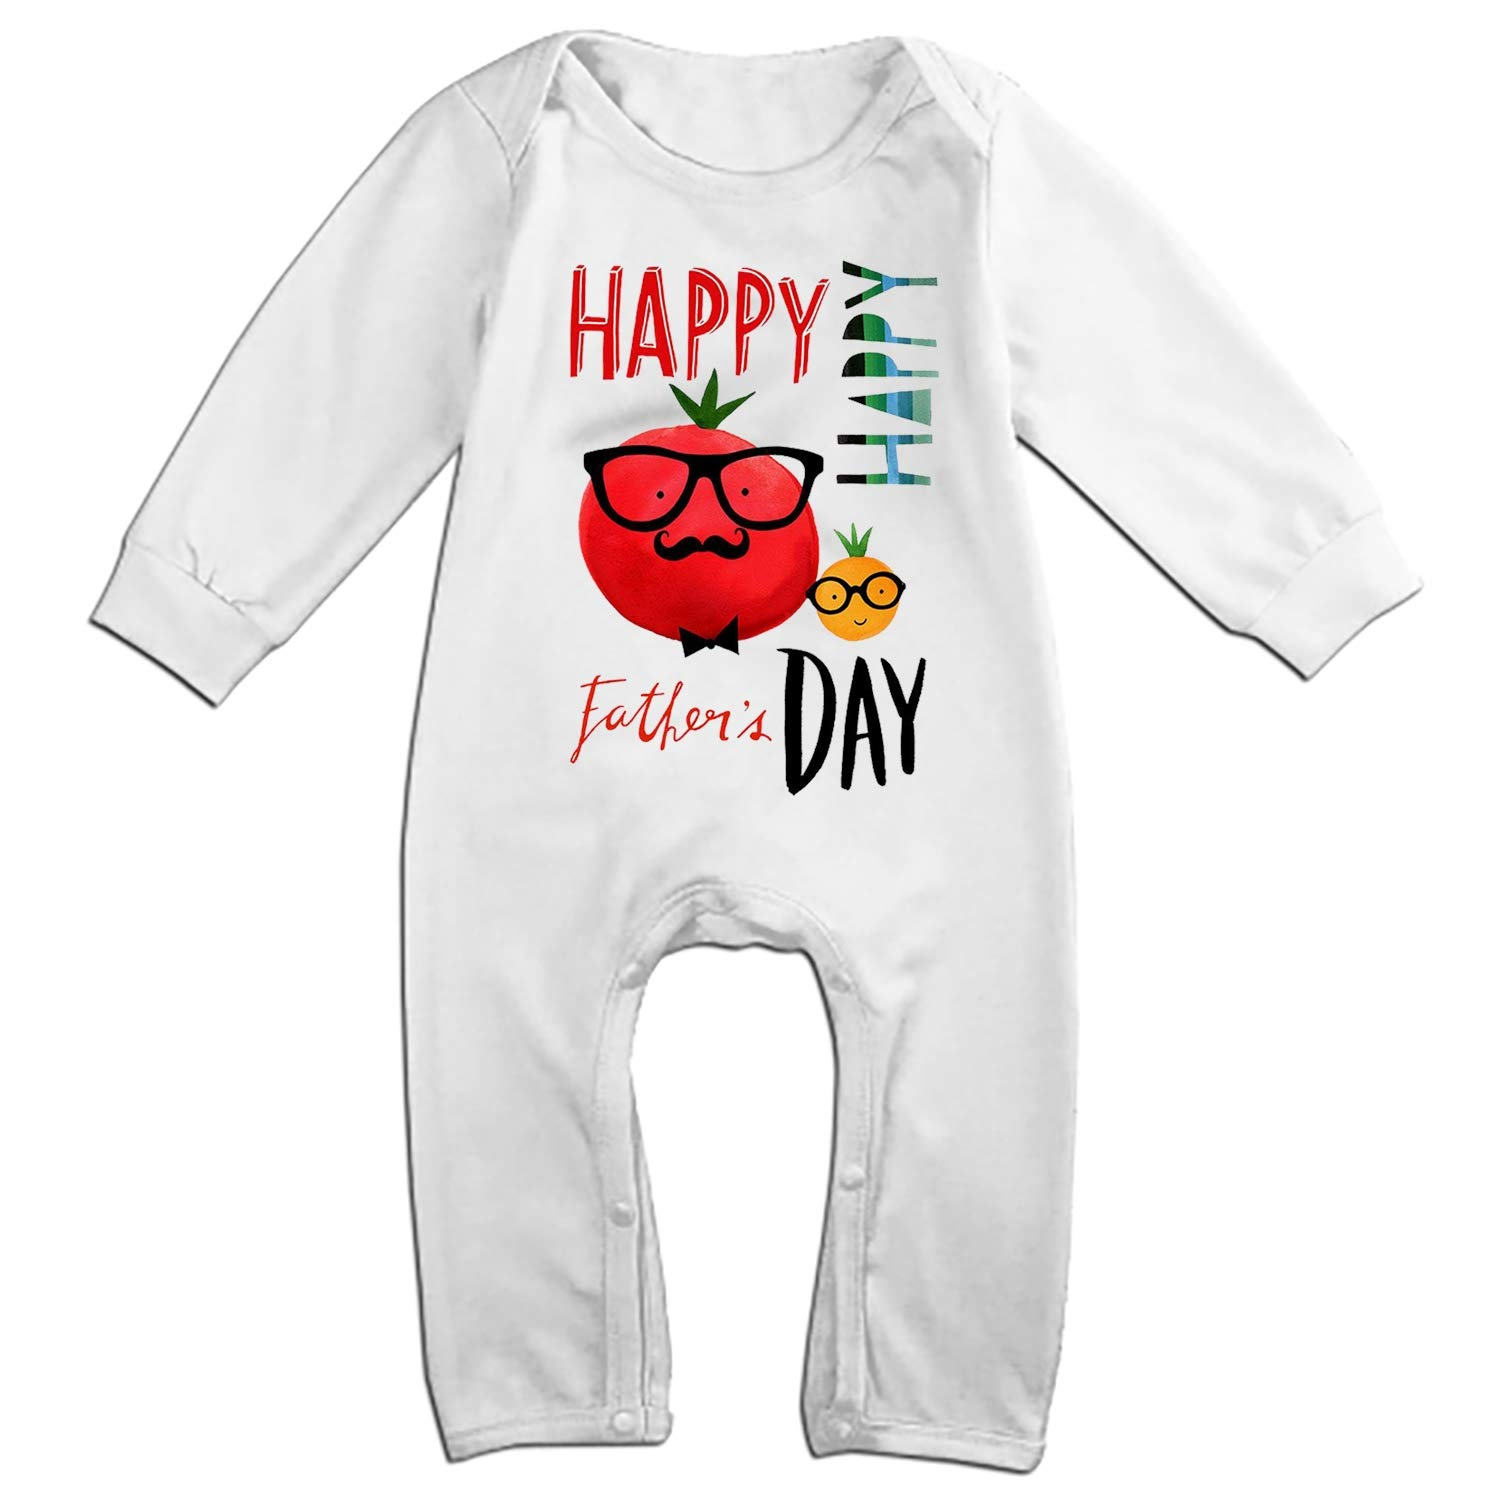 WANL Baby Independence Day Bodysuits Long Sleeve Rompers Casual Clothes